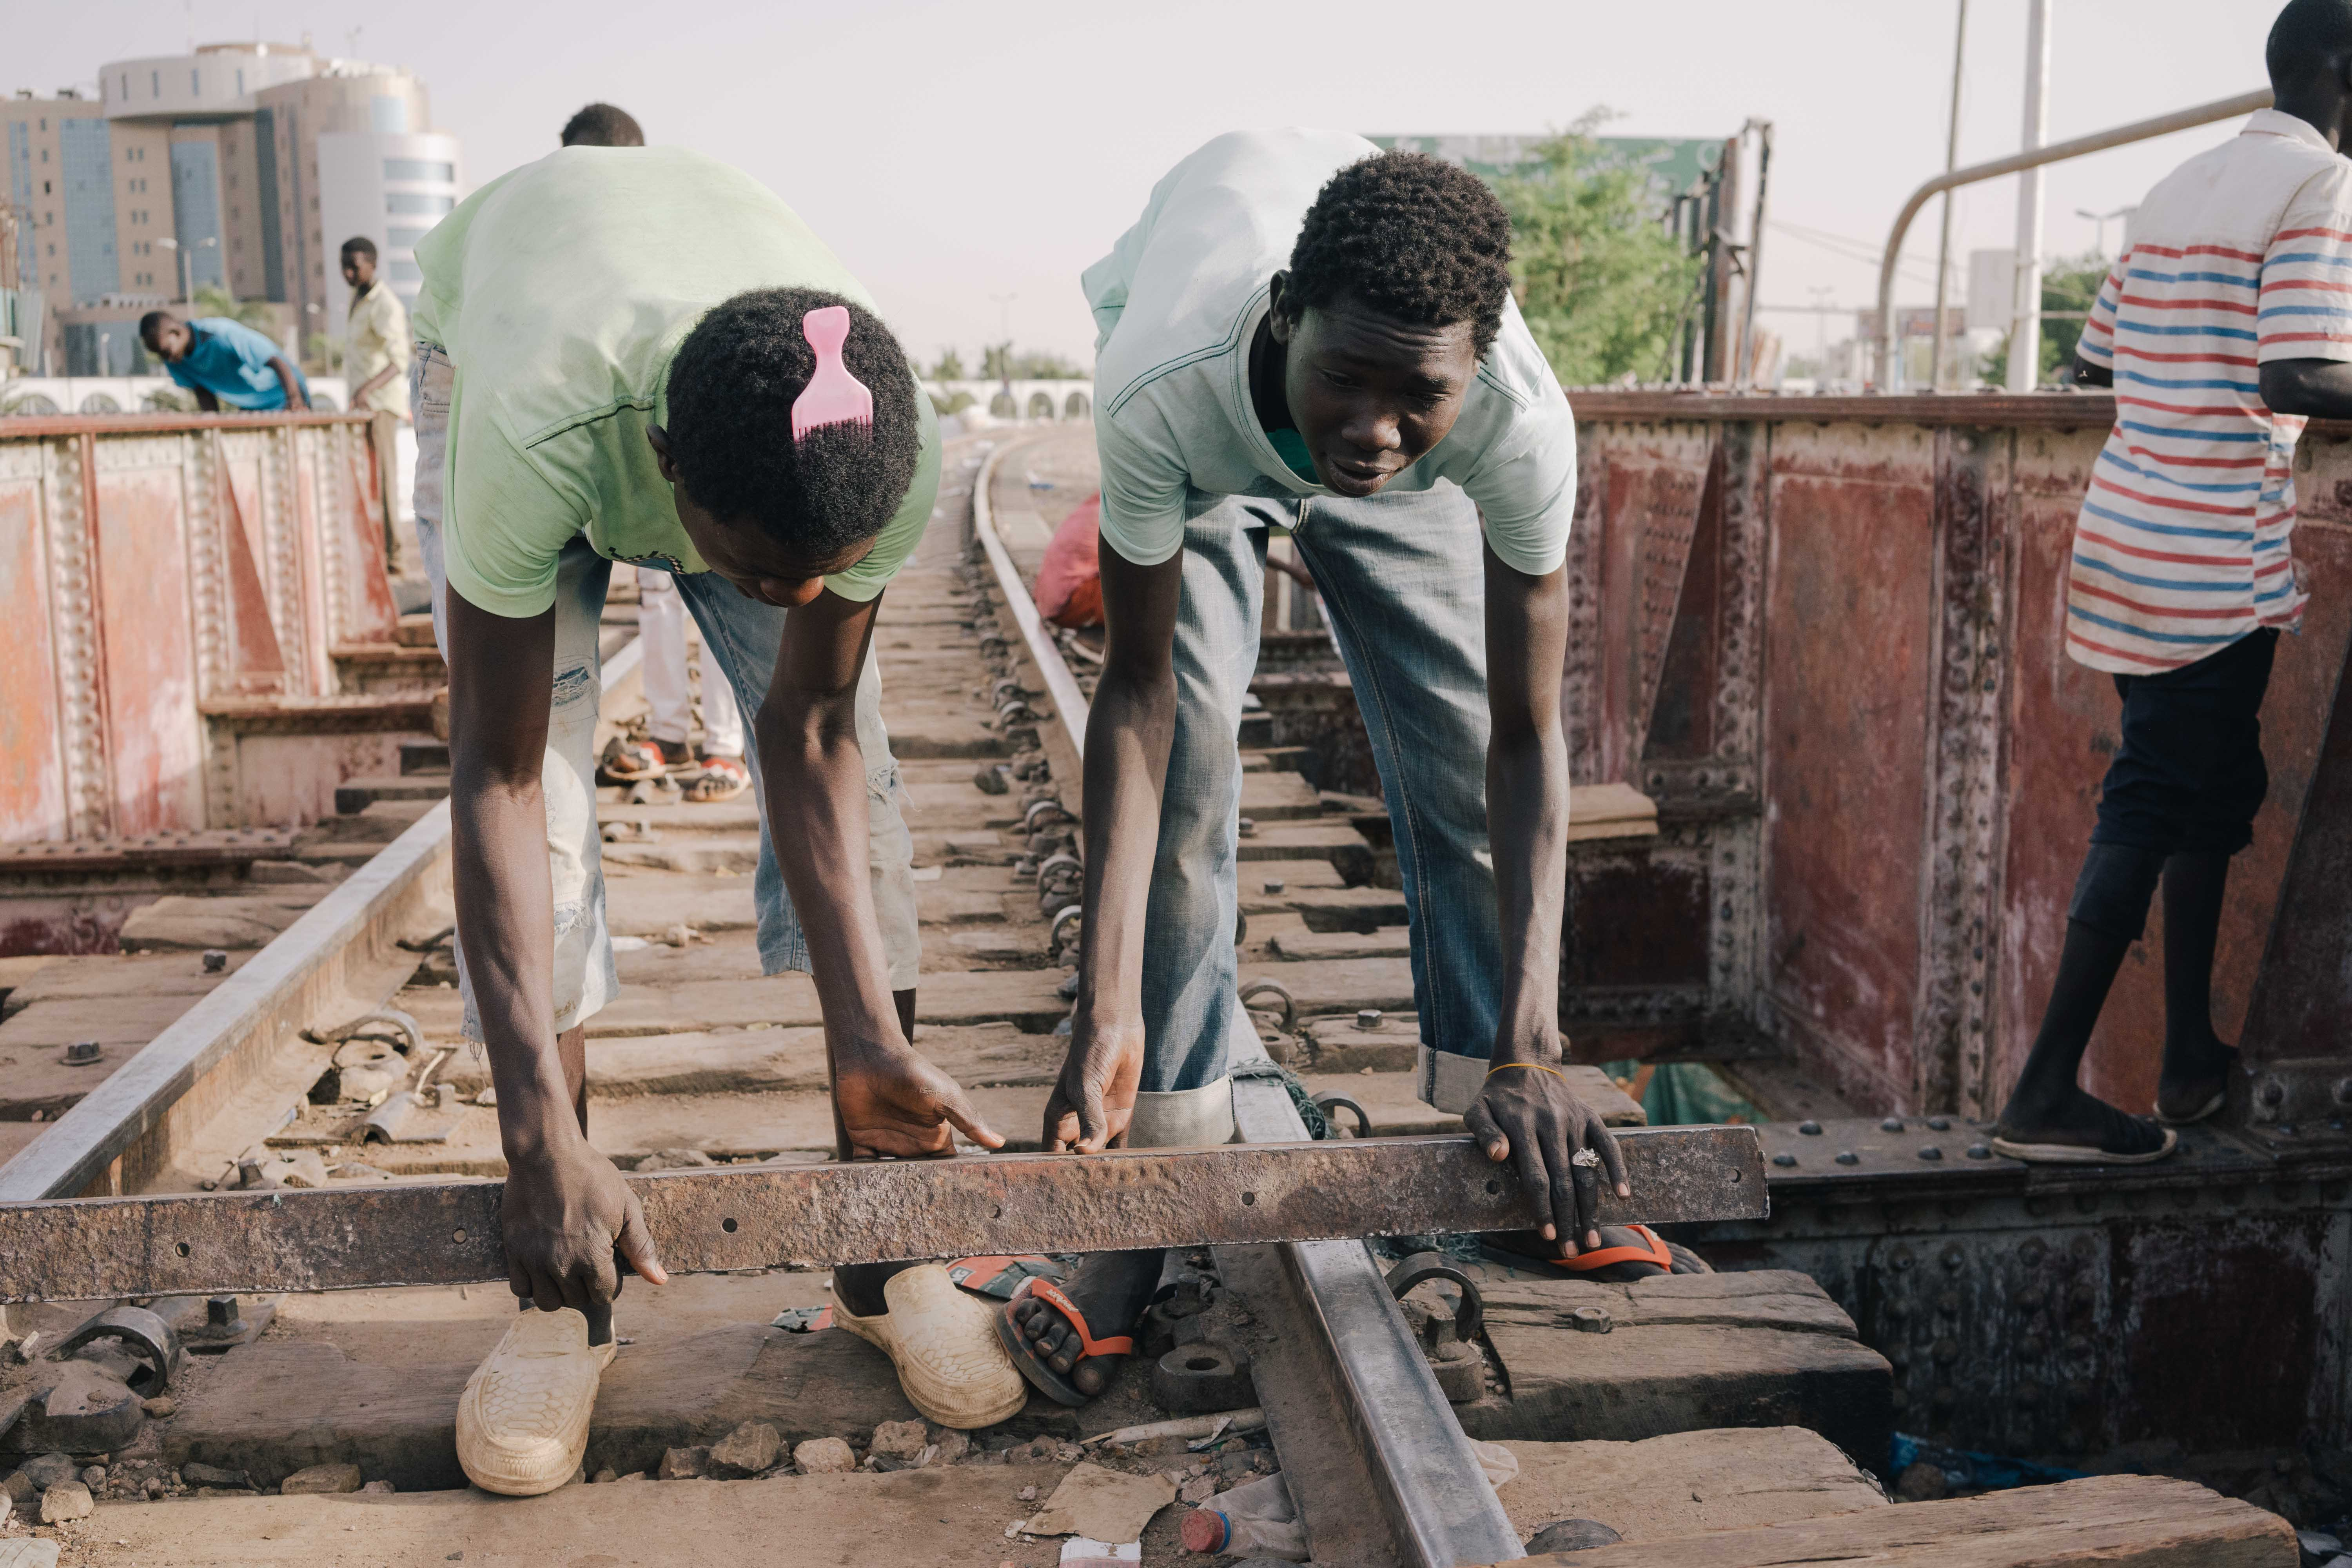 Sudanese youths beat a rhythm on a metal railway bridge in Khartoum (MEE/Kaamil Ahmed)